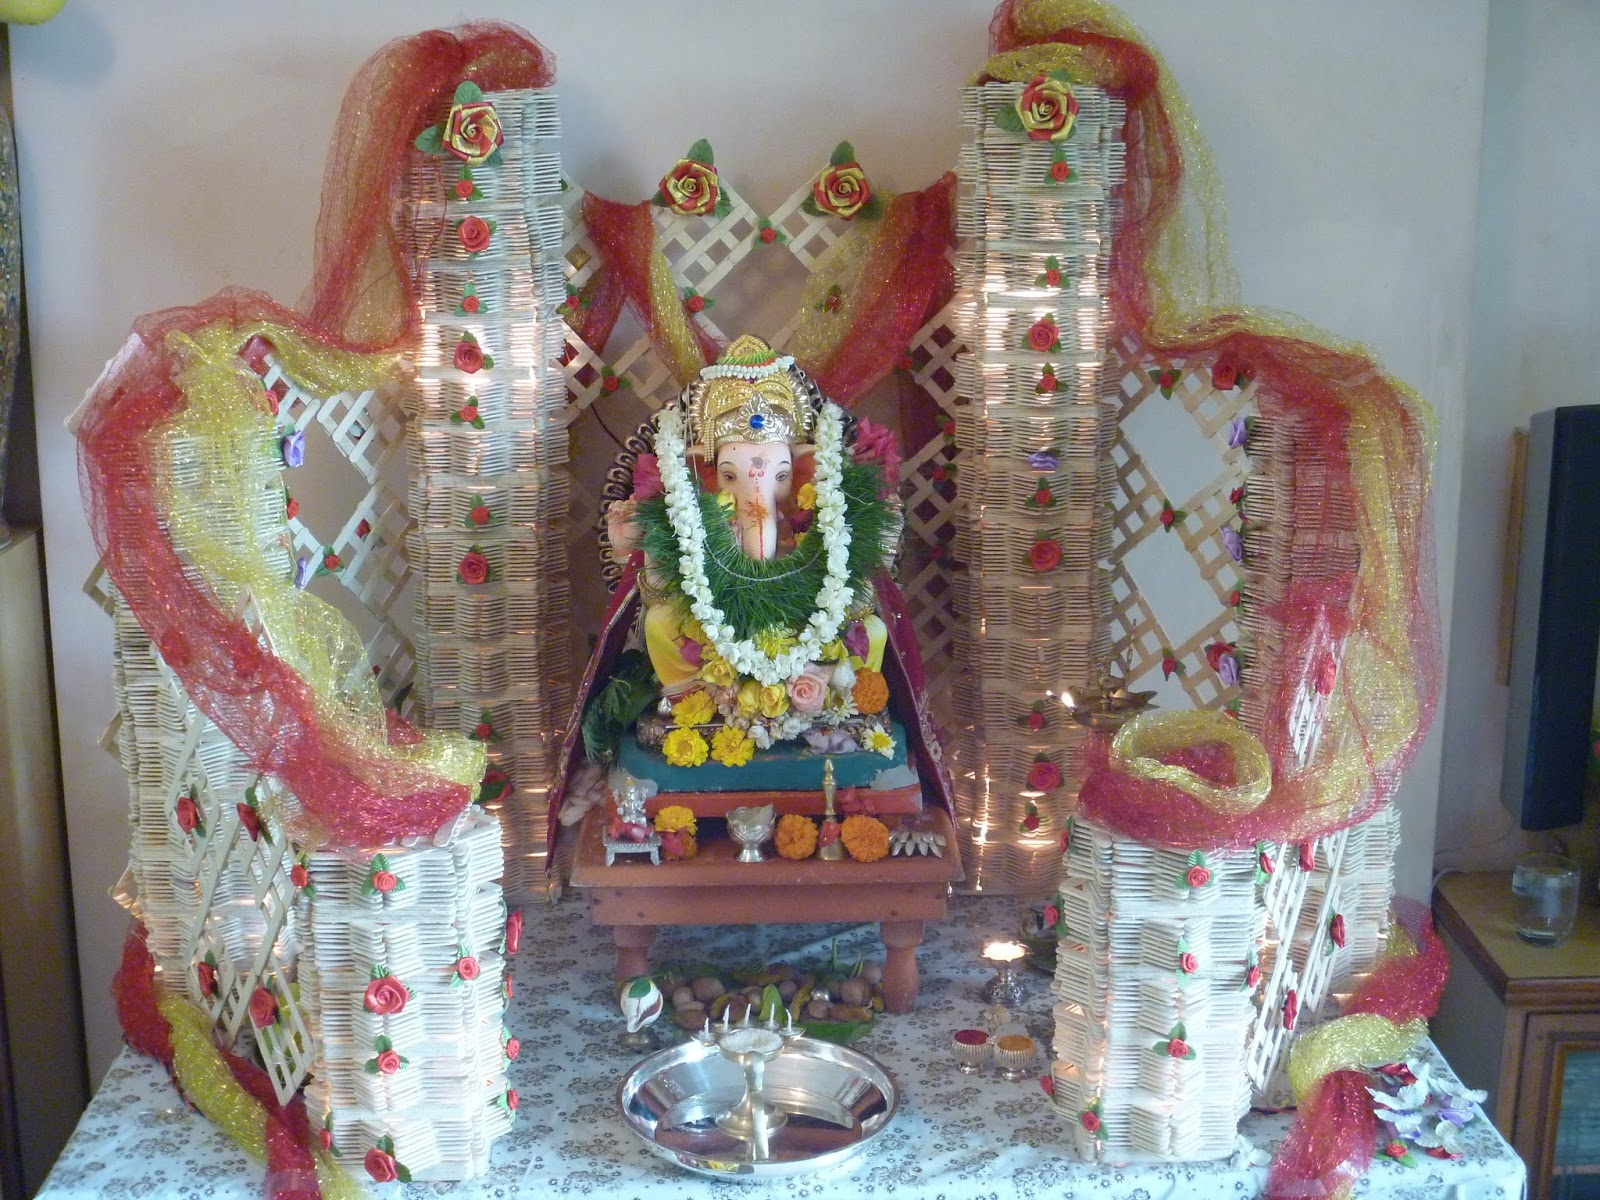 Desikalakar ganpati decorations 2007 ganpati Environmentally friendly decorations